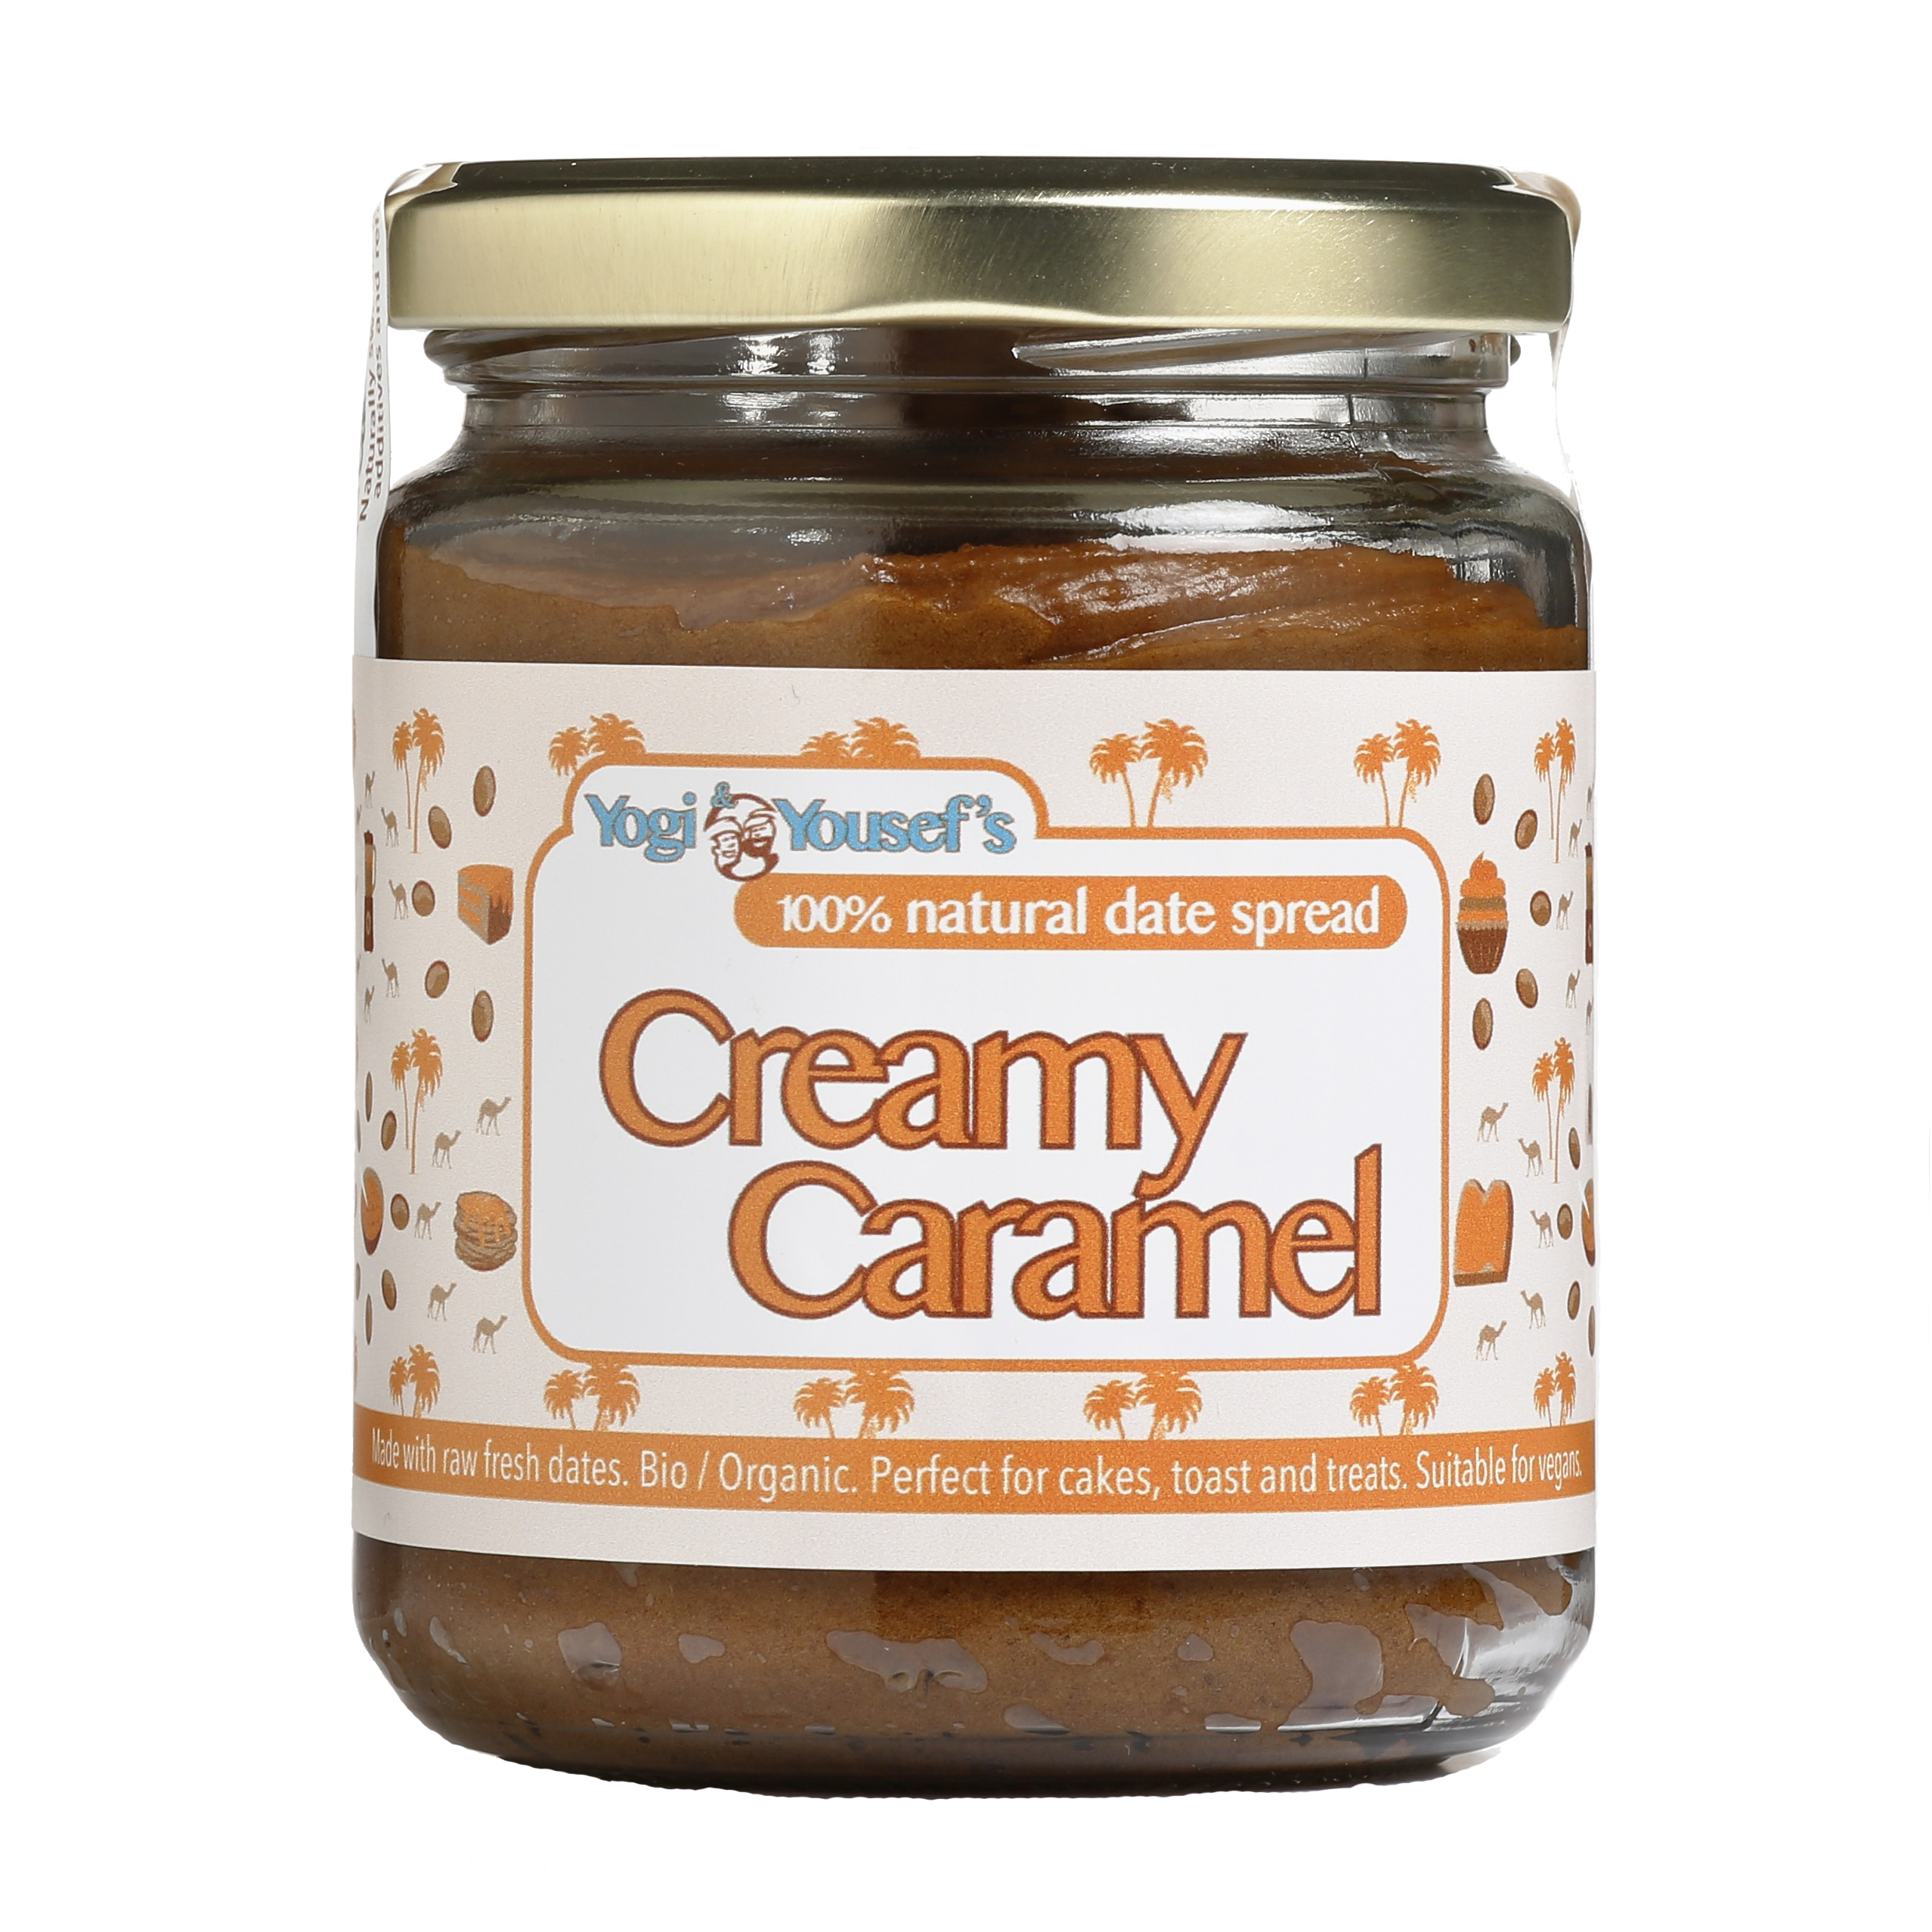 Dadelspread Creamy Caramel - Yogi & Yousef - product ontwerp - Dots & Lines